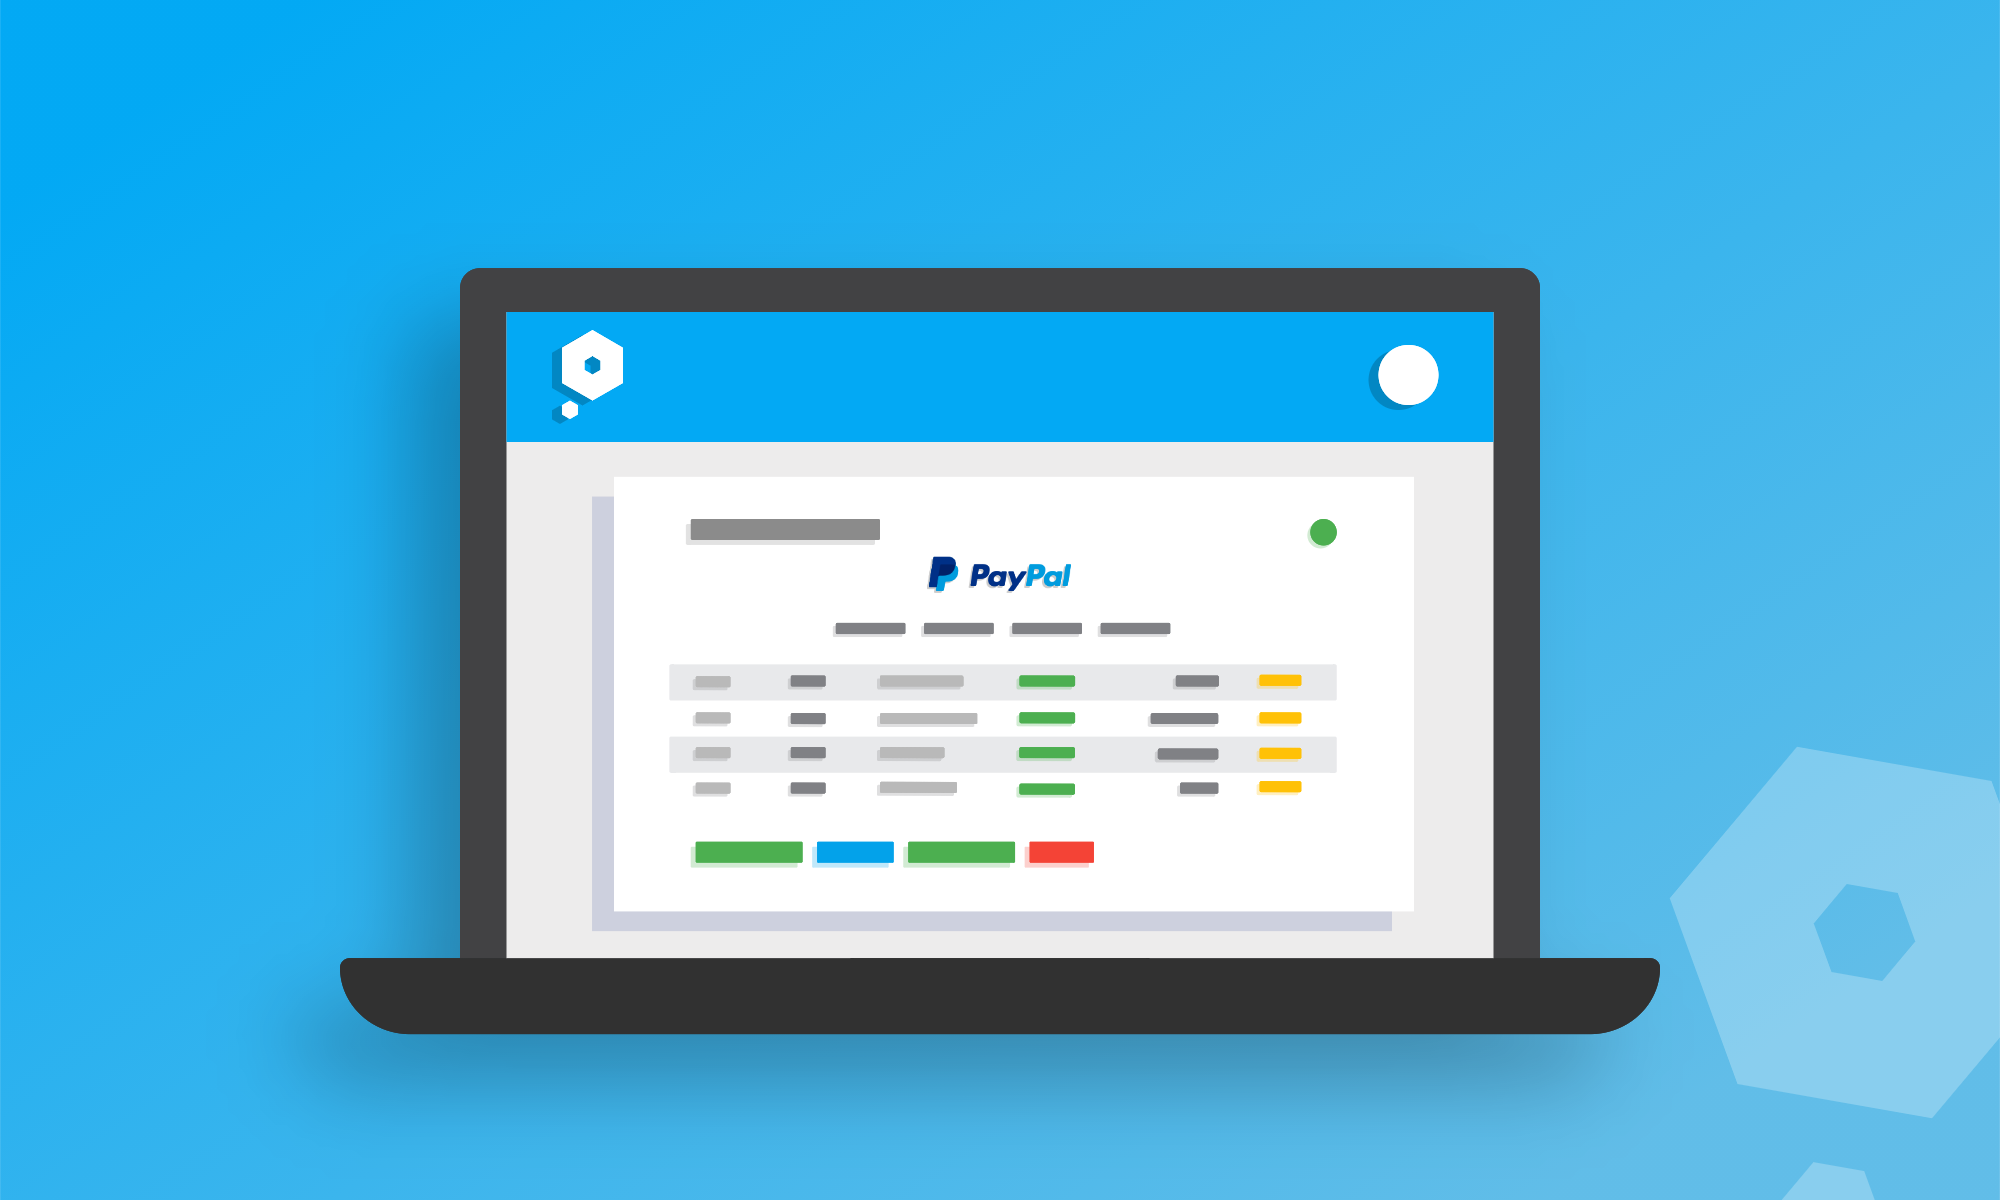 PayPal Feeds